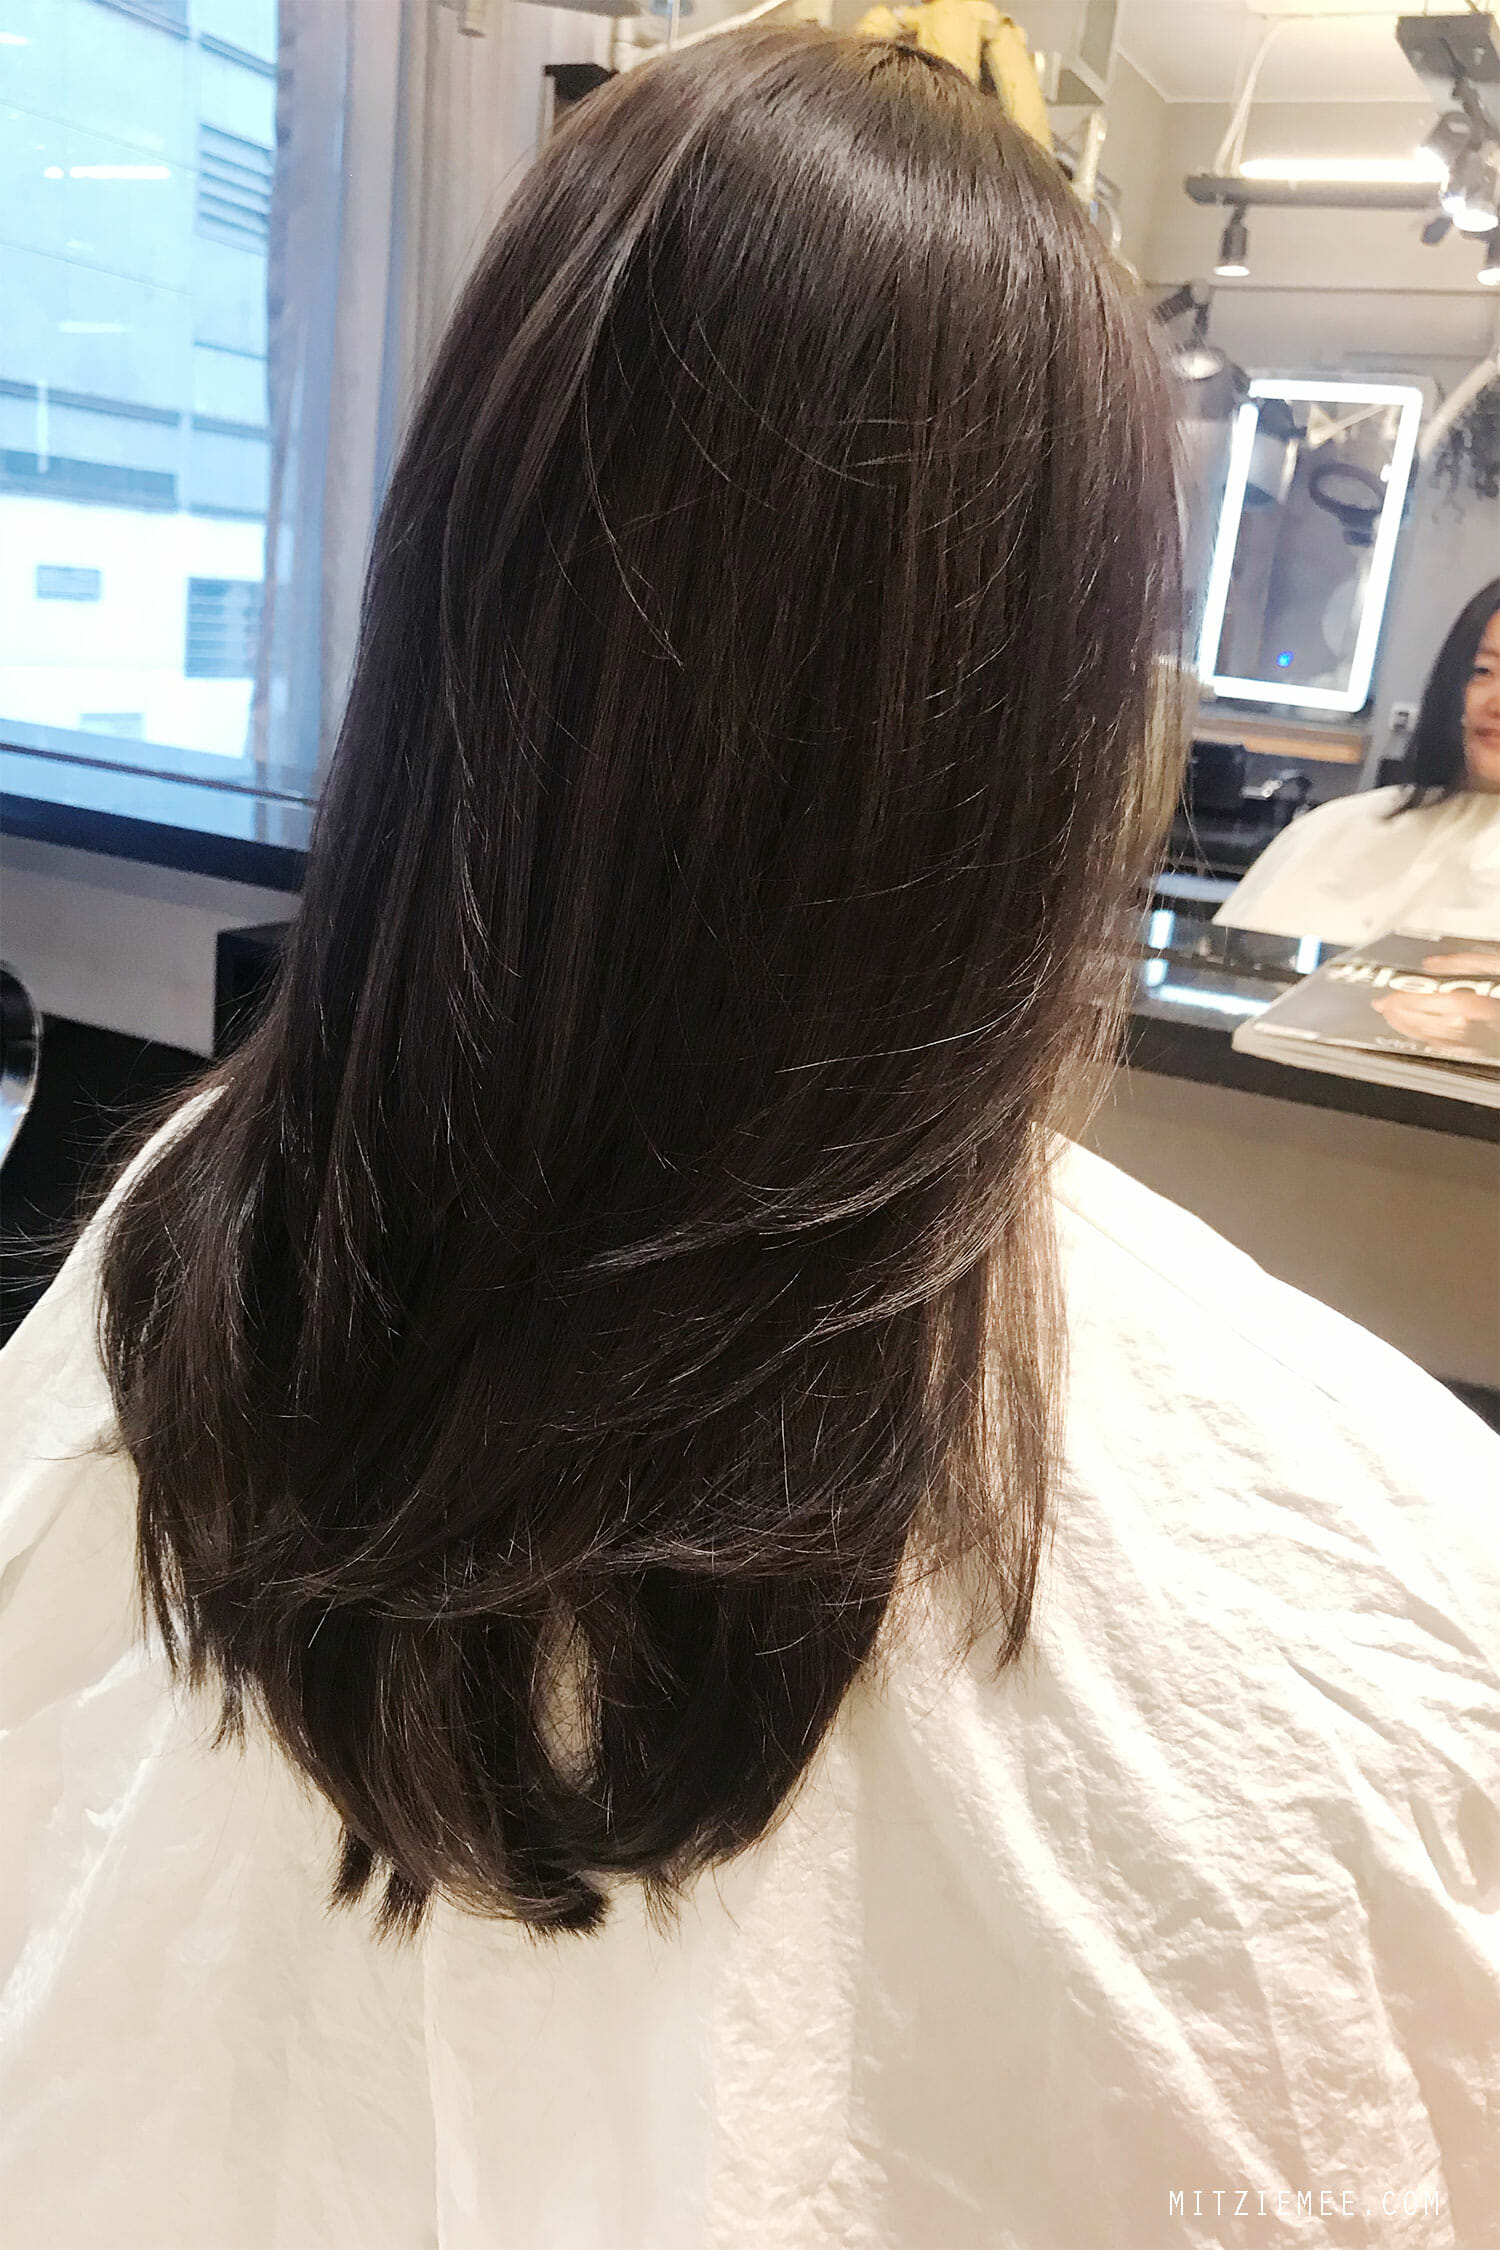 My new haircut at Leighton 10 in Causeway Bay - Hong Kong Blog